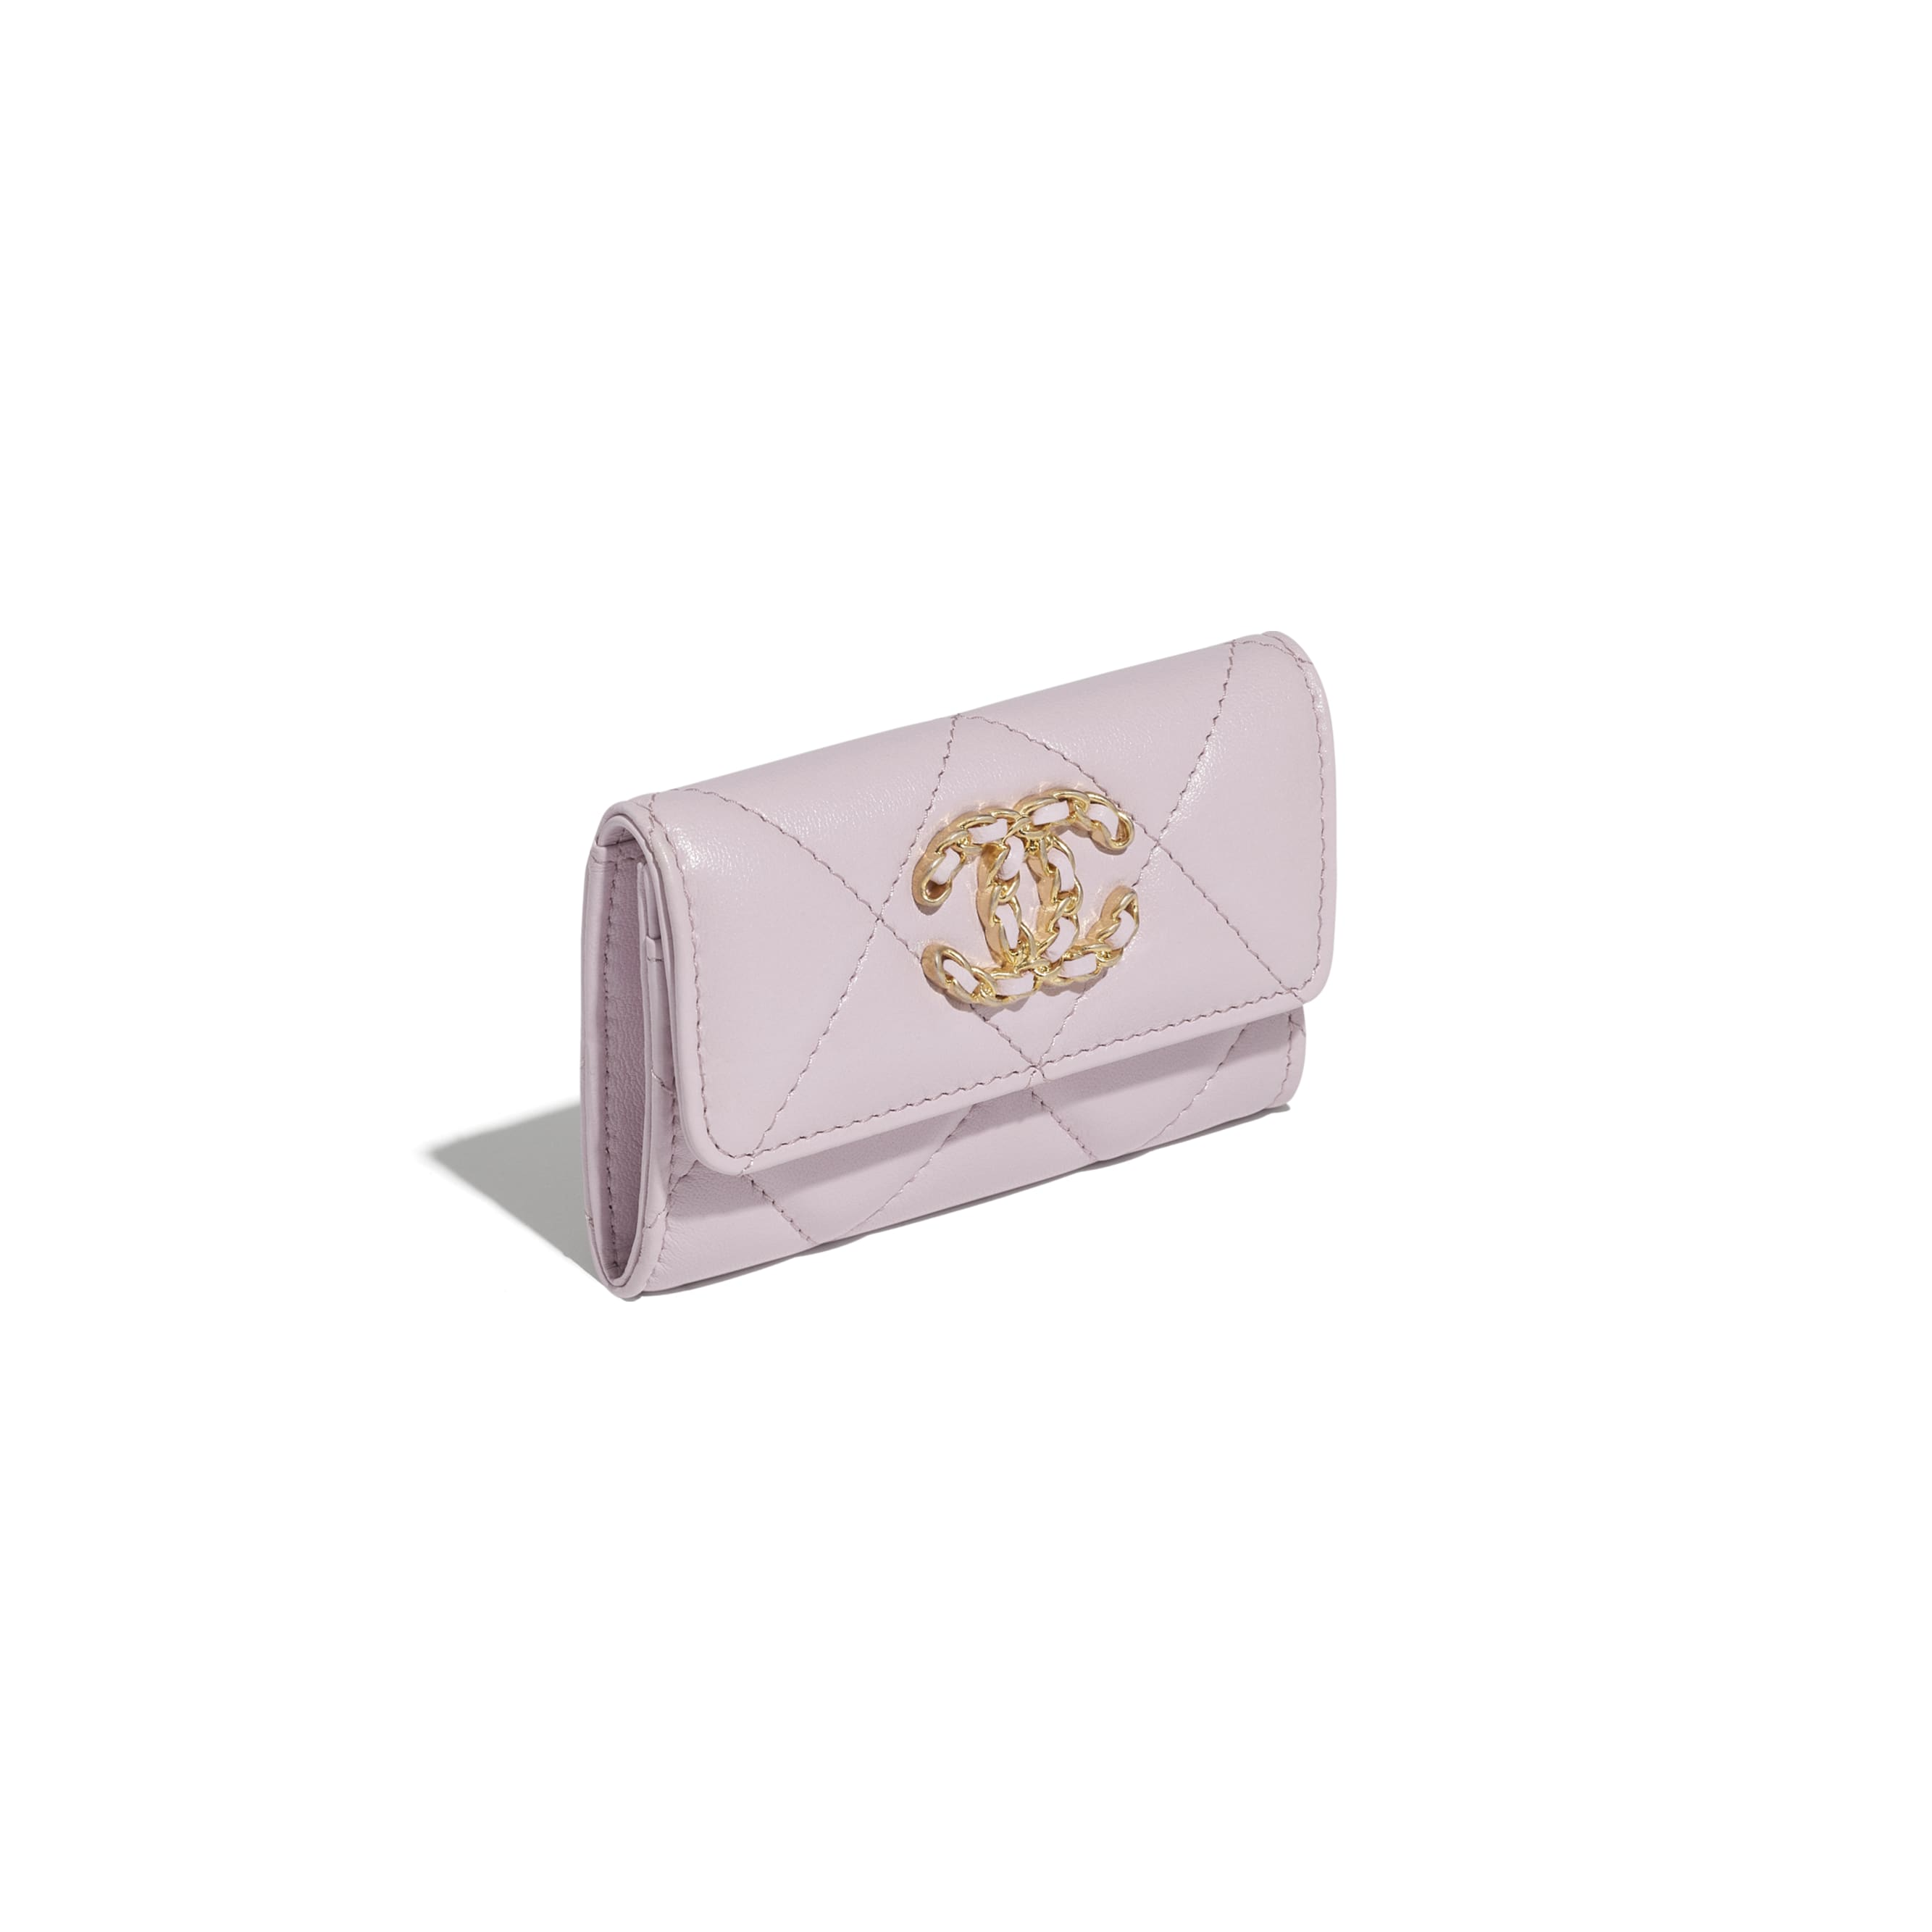 CHANEL 19 Flap Card Holder - Light Pink - Lambskin, Gold-Tone, Silver-Tone & Ruthenium-Finish Metal - CHANEL - Extra view - see standard sized version